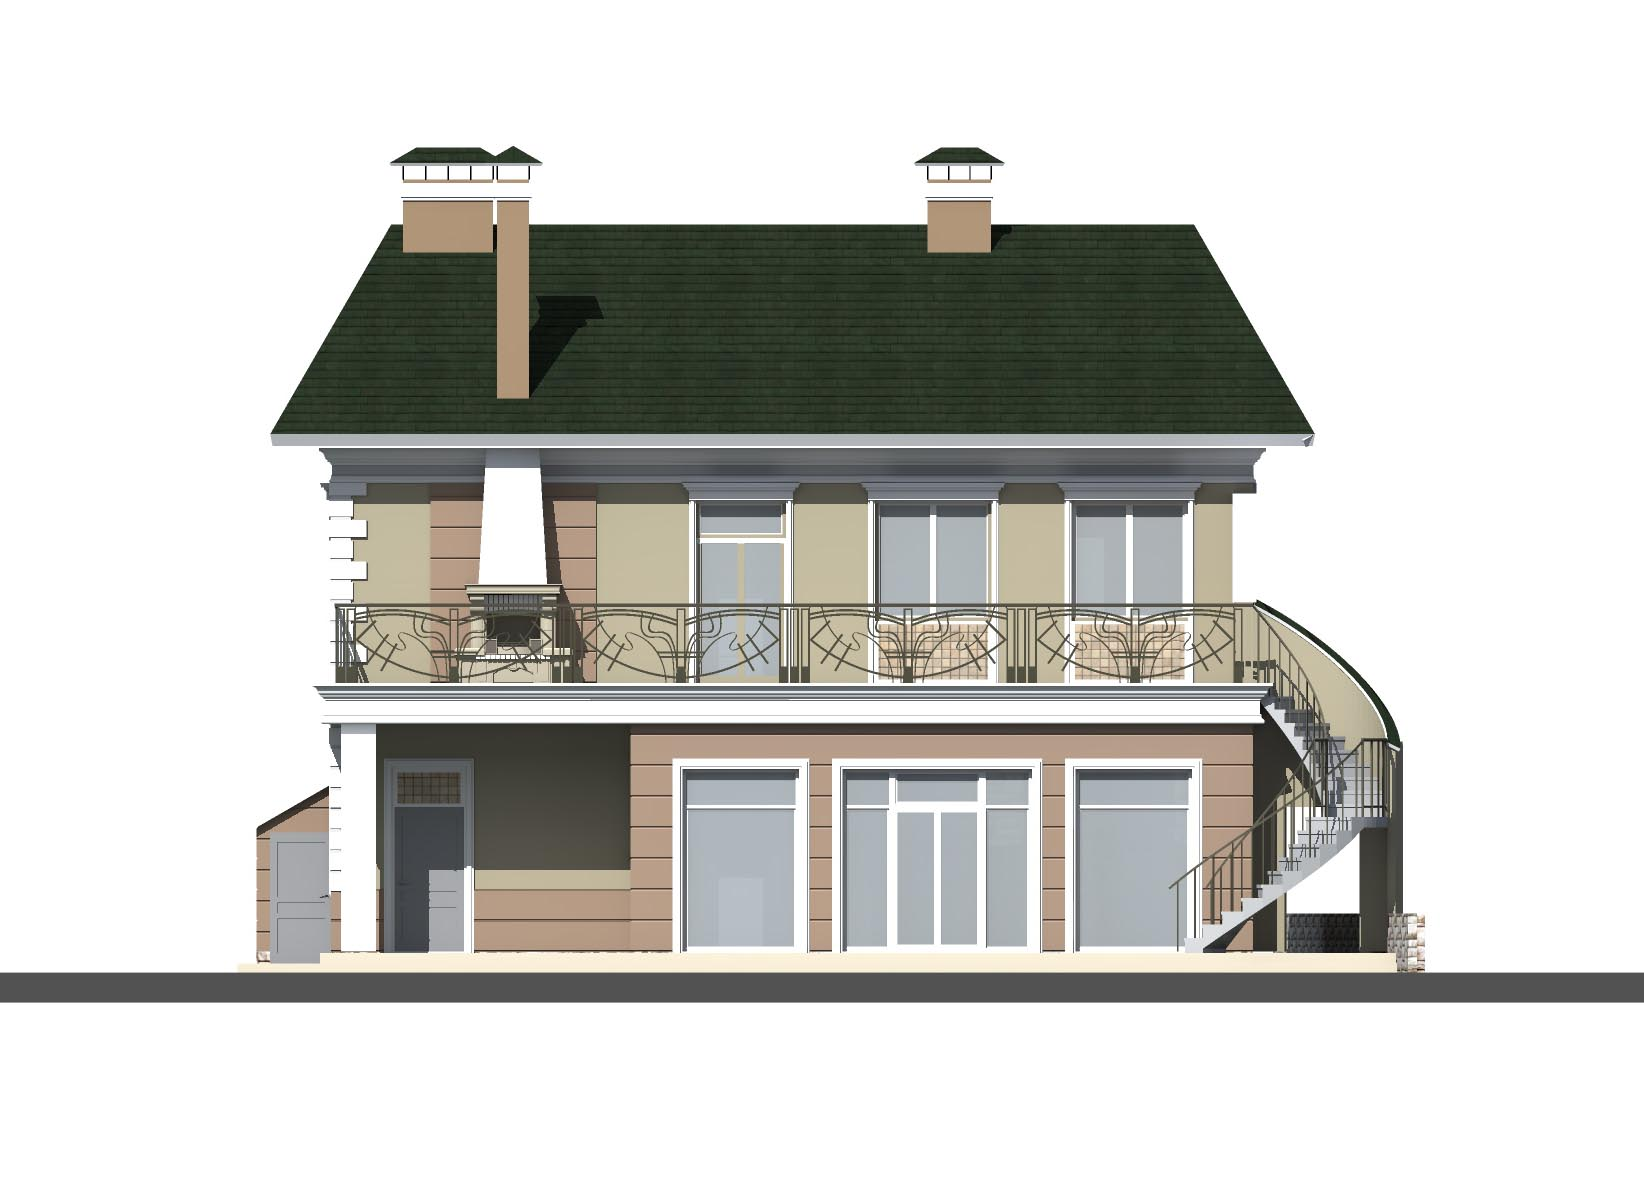 Two-storey brick house with a basement (DWG)